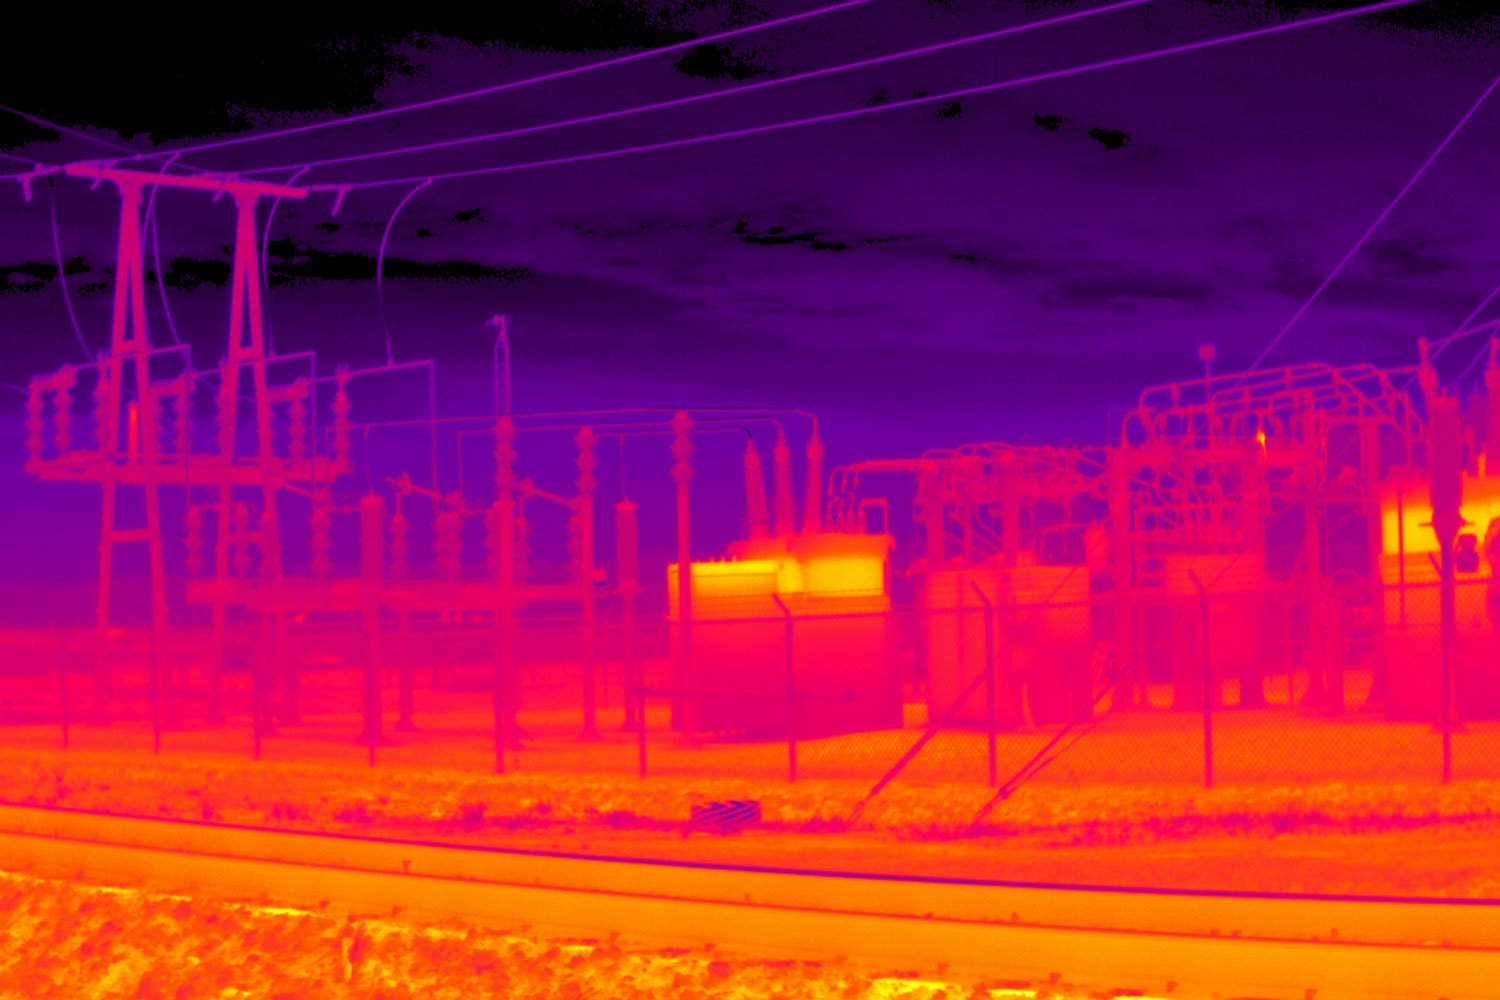 Infrared image taken with a thermal camera